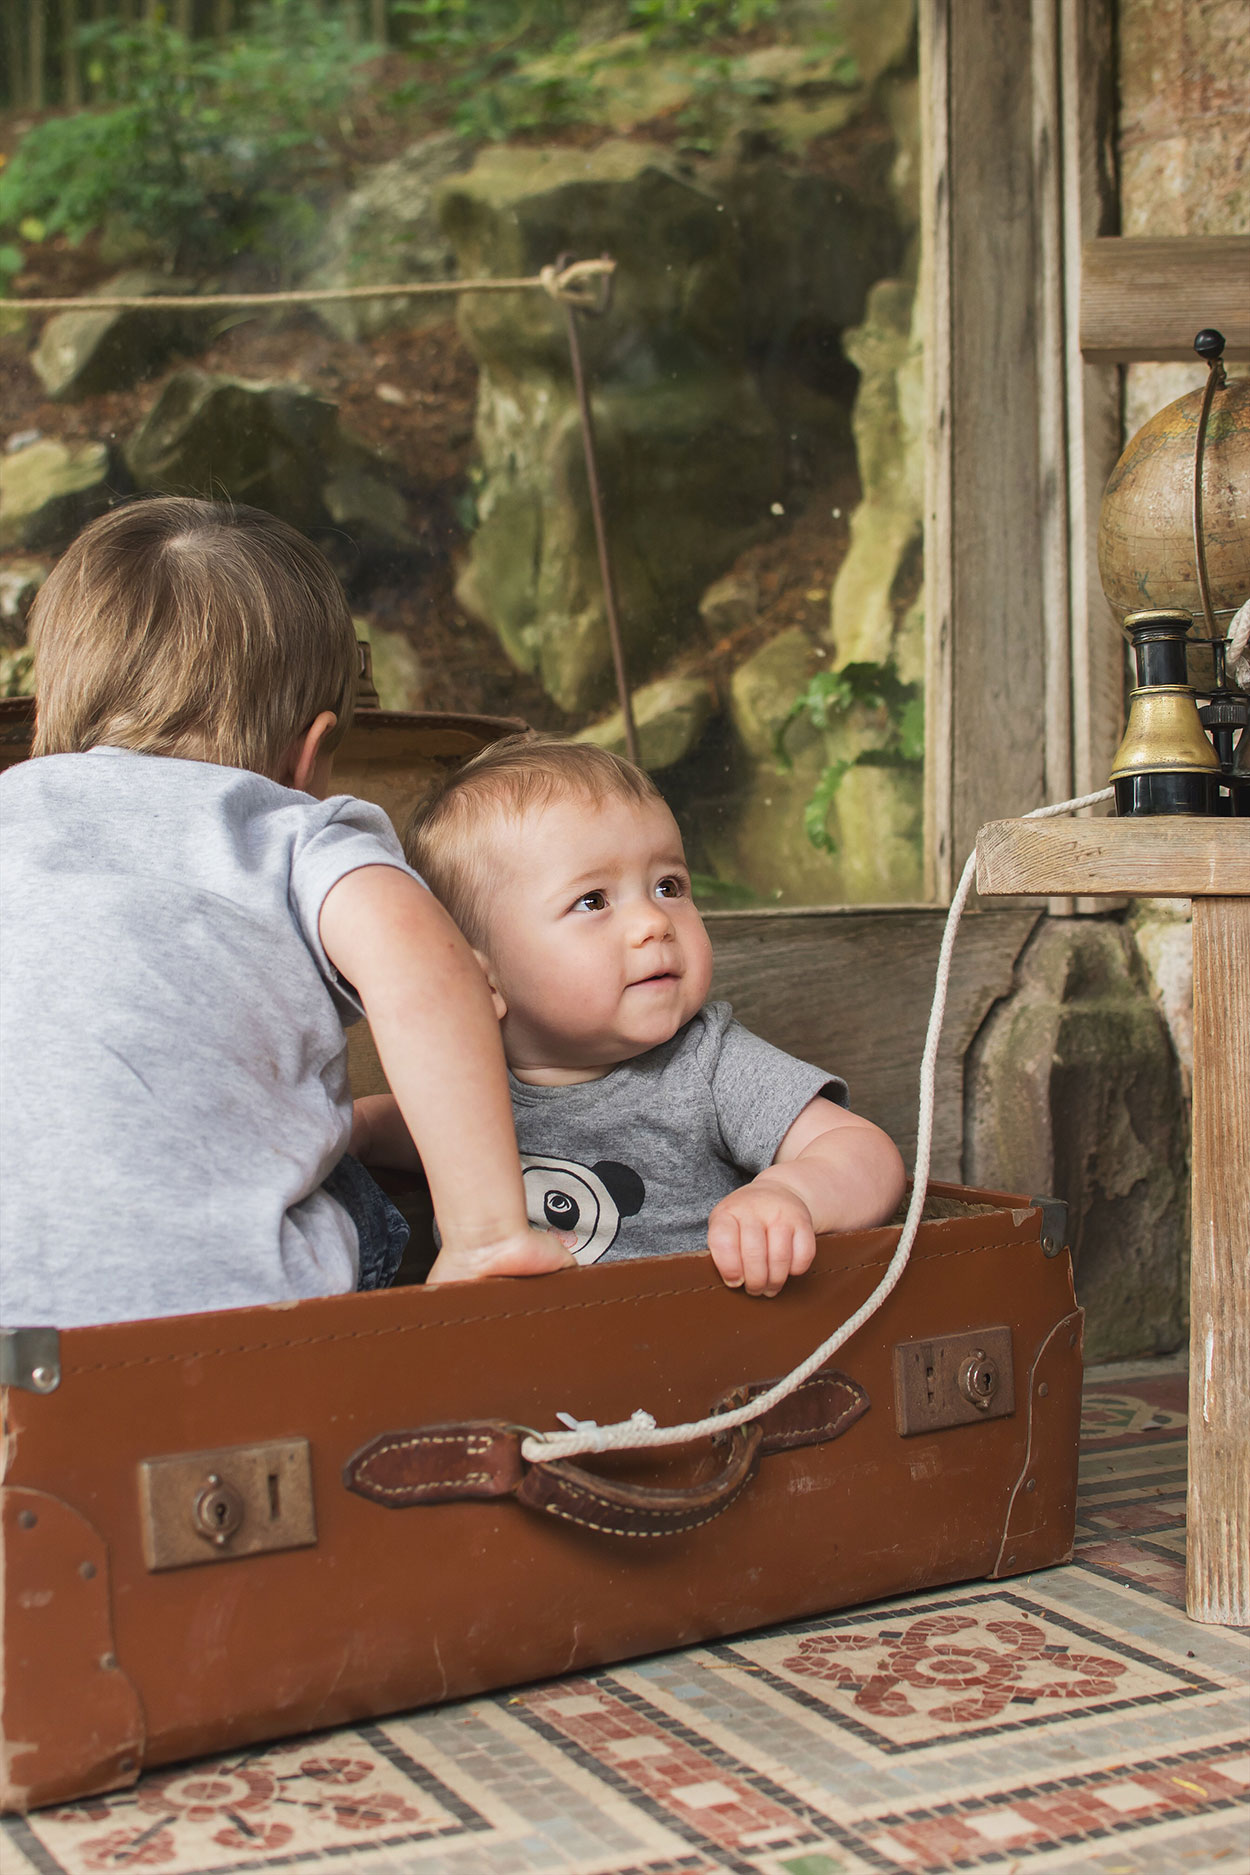 Brothers playing in the suitcase with vintage binoculars and globe in the summer house of the rose garden at Tyntesfield Estate, Hampshire, National Trust